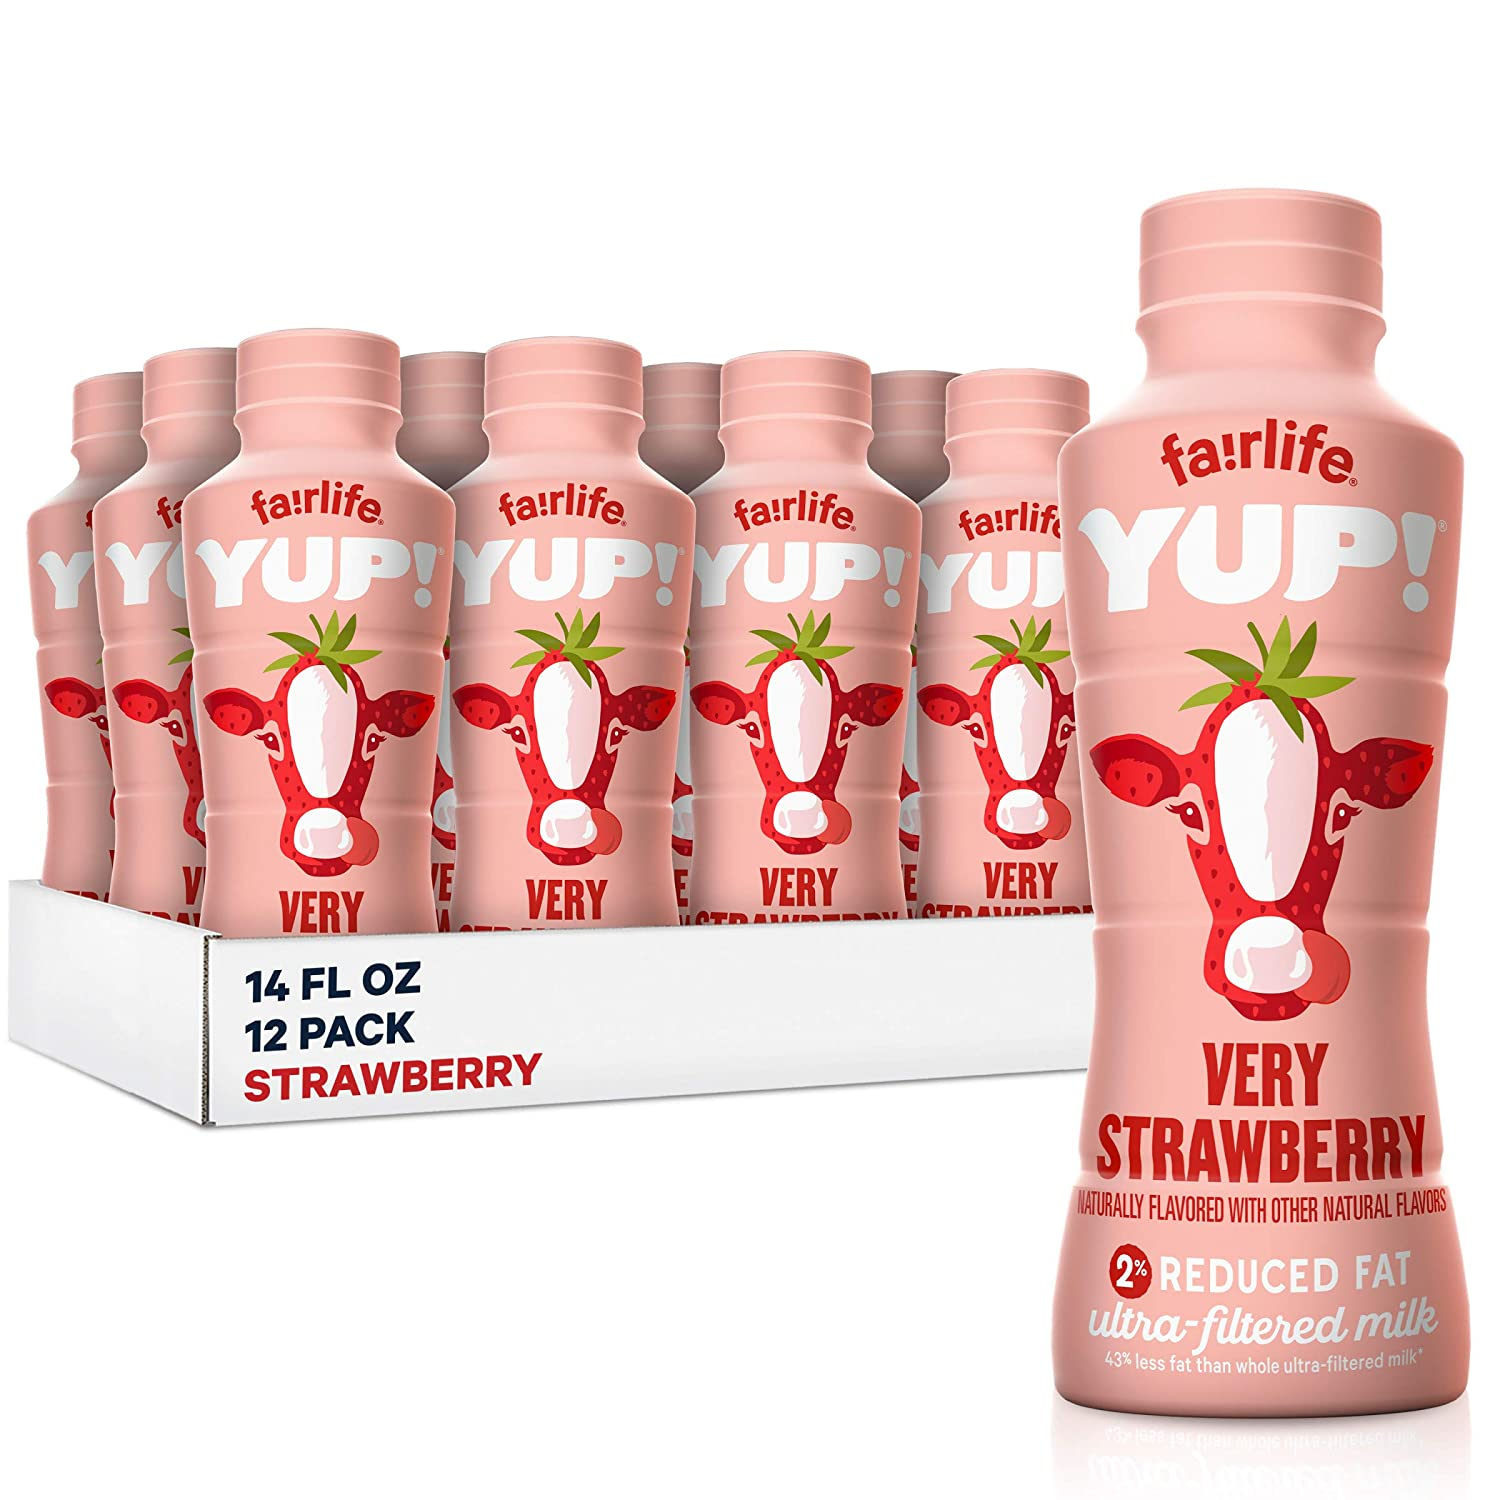 fairlife YUP! Low Fat, Ultra-Filtered Milk, Very Strawberry Flavor, All Natural Flavors (Packaging May Vary), 14 fl oz, 12 count